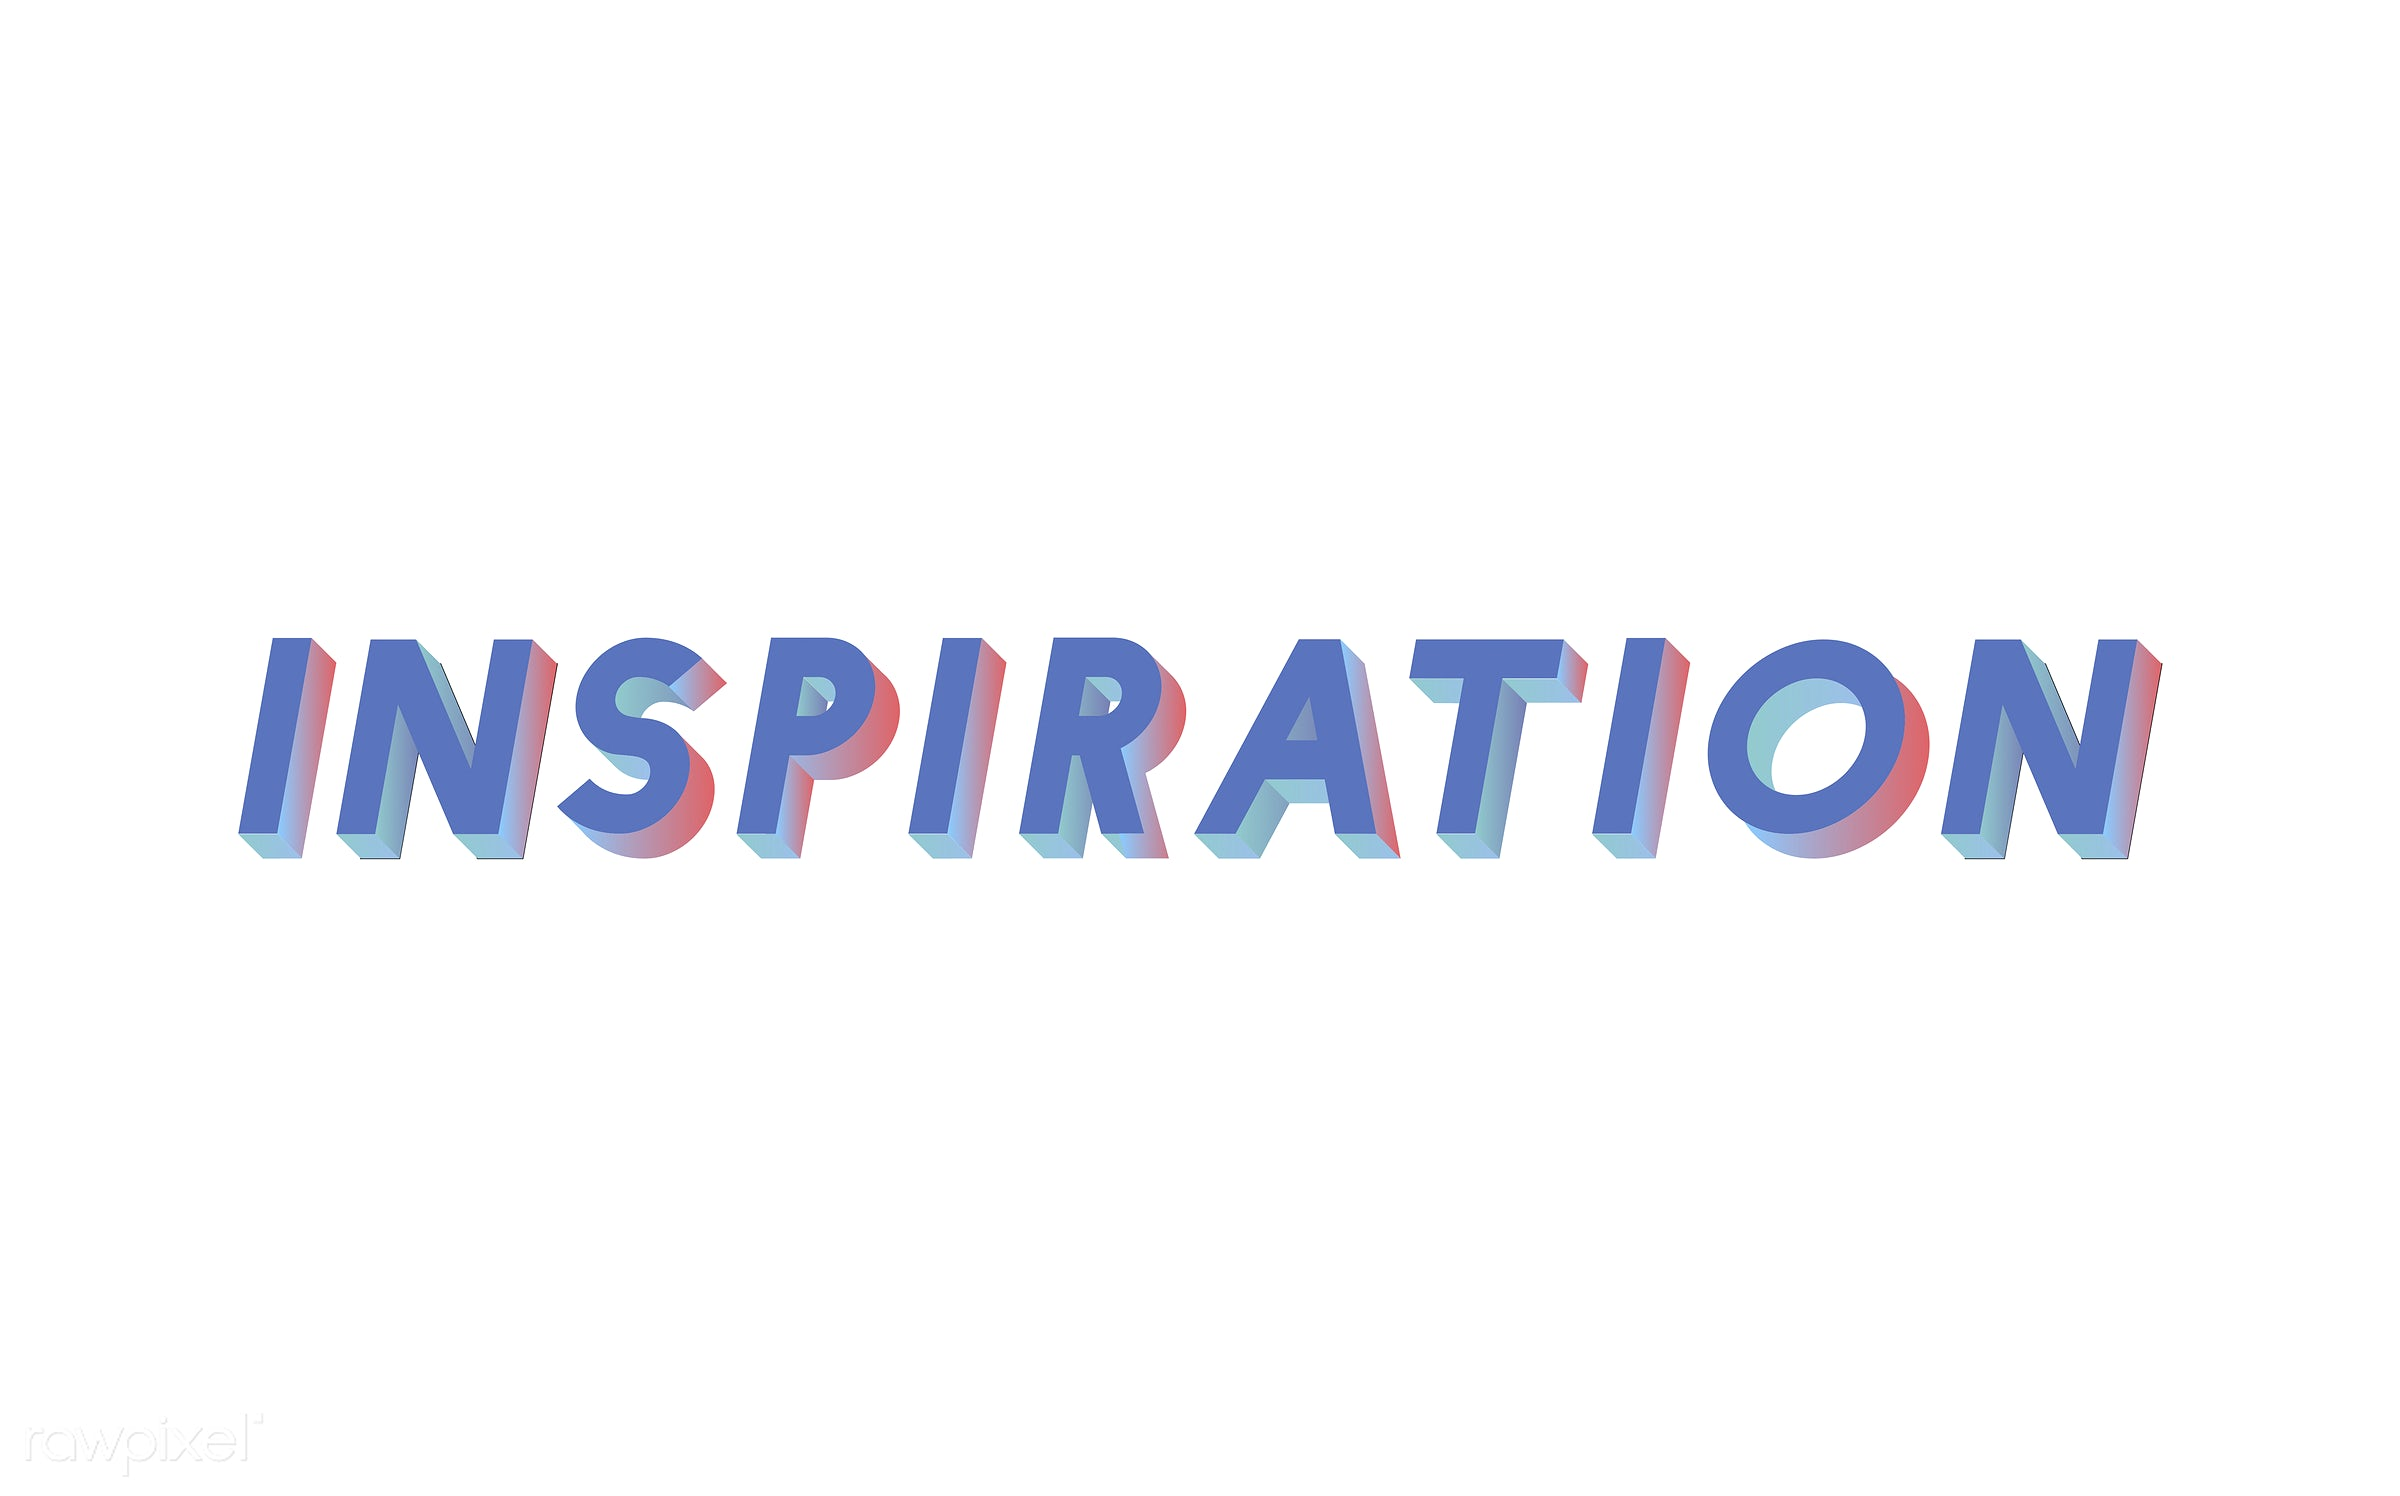 neon, colorful, 3d, three dimensional, vector, illustration, graphic, word, white, blue, inspire, inspiring